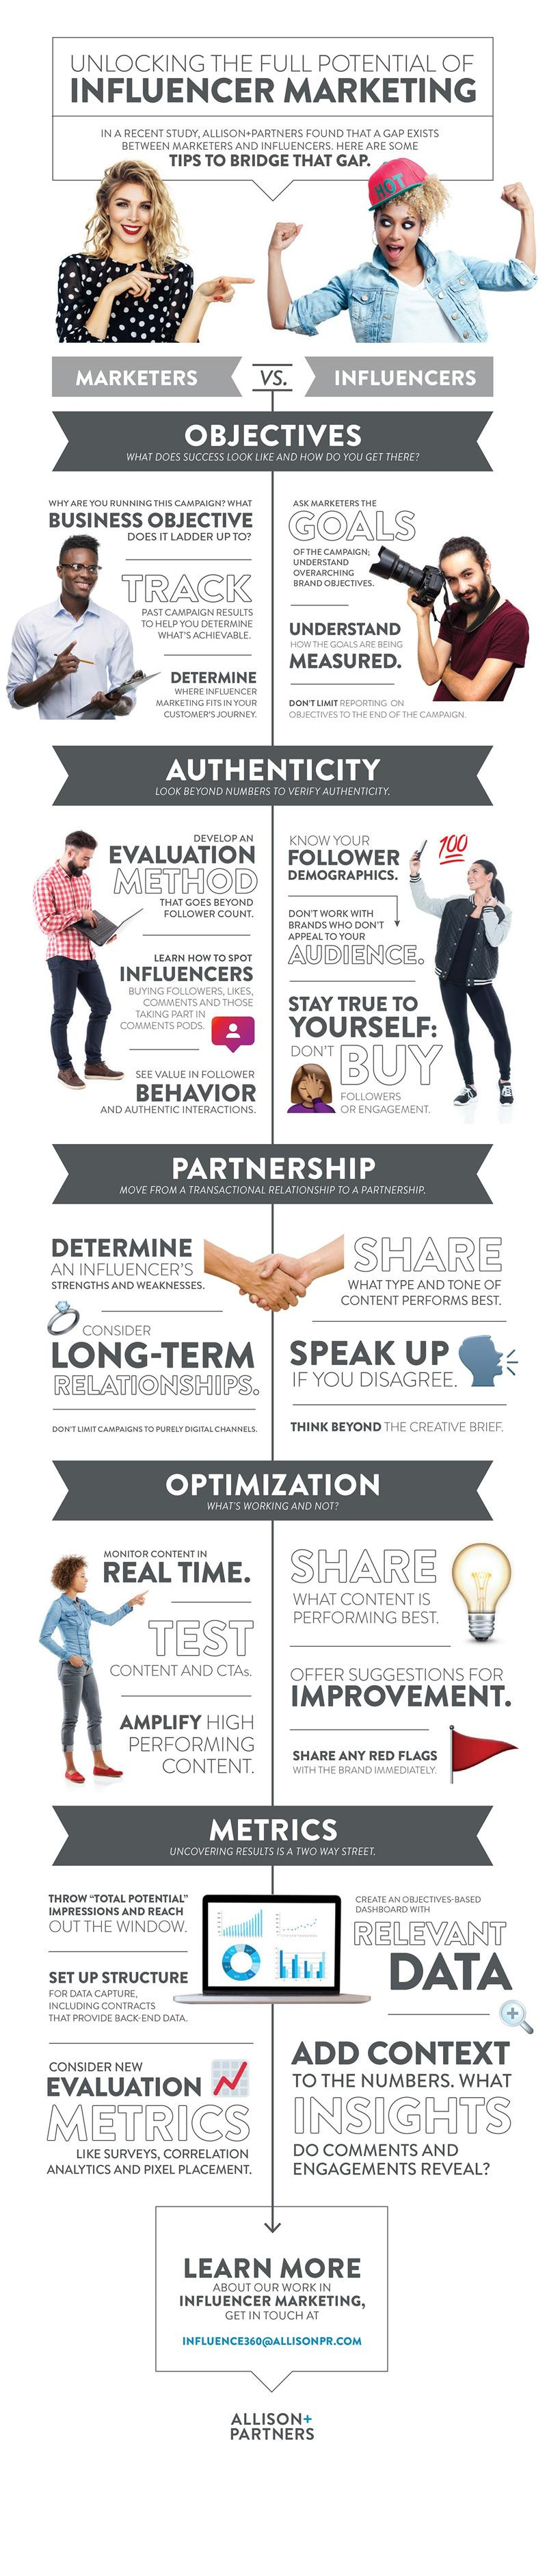 allison pr influencer marketing survey infographic